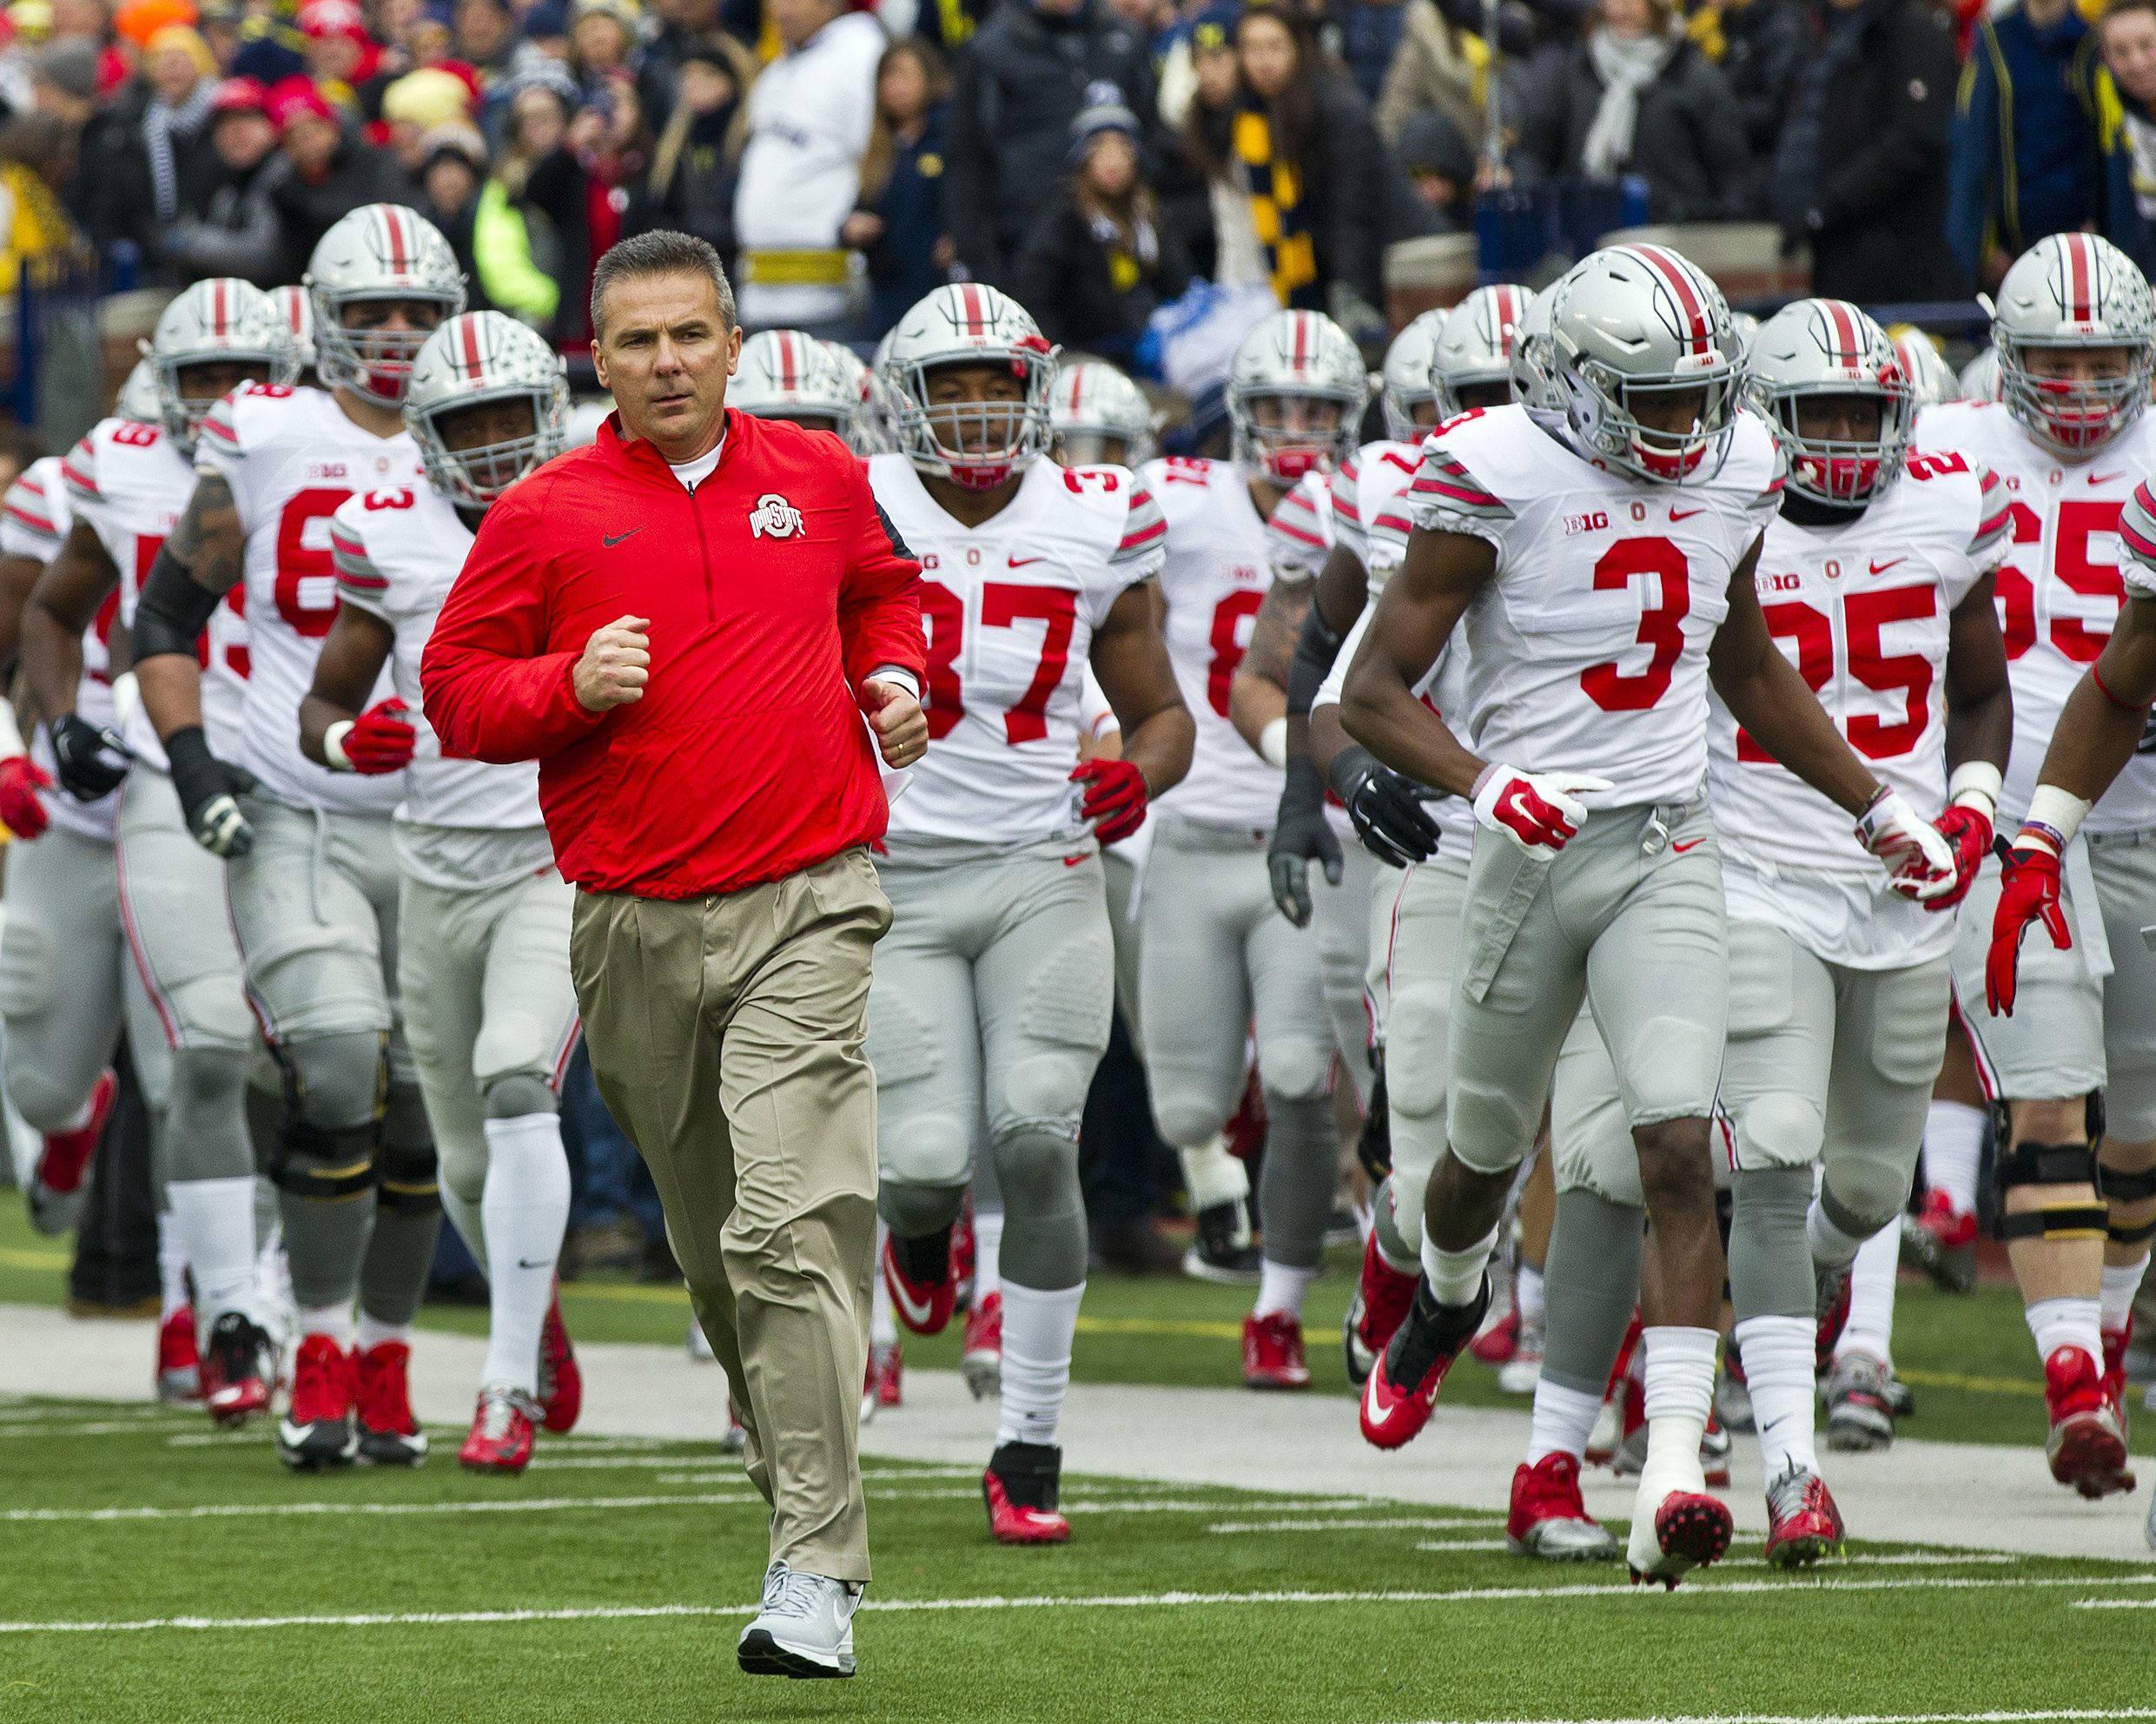 Last year's top-ranked team in the AP Top 25 preseason poll was Ohio State University, whose head coach, Urban Meyer, is seen here leading his team onto the field before playing the University of Michigan in Ann Arbor, Michigan, Nov. 28, 2015. (AP Photo/Tony Ding)